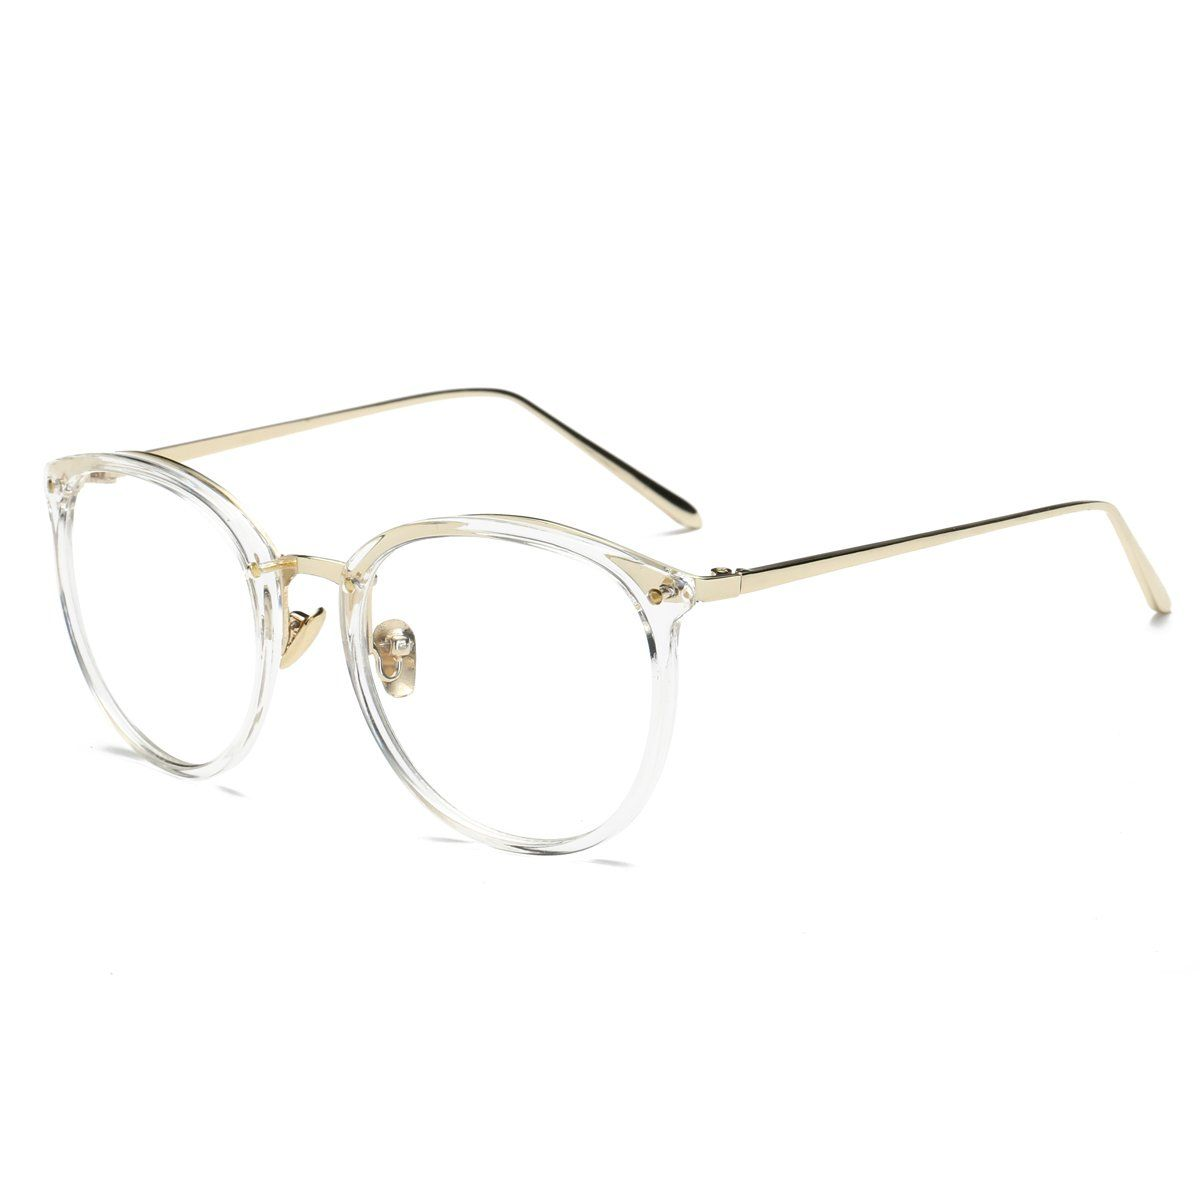 afe9385a26 Amomoma Women's Fashion Round Eyeglasses Optical Frame Clear Lens Eyewear  AM5001 C7 Transparent Gold 50 -- Want to know more